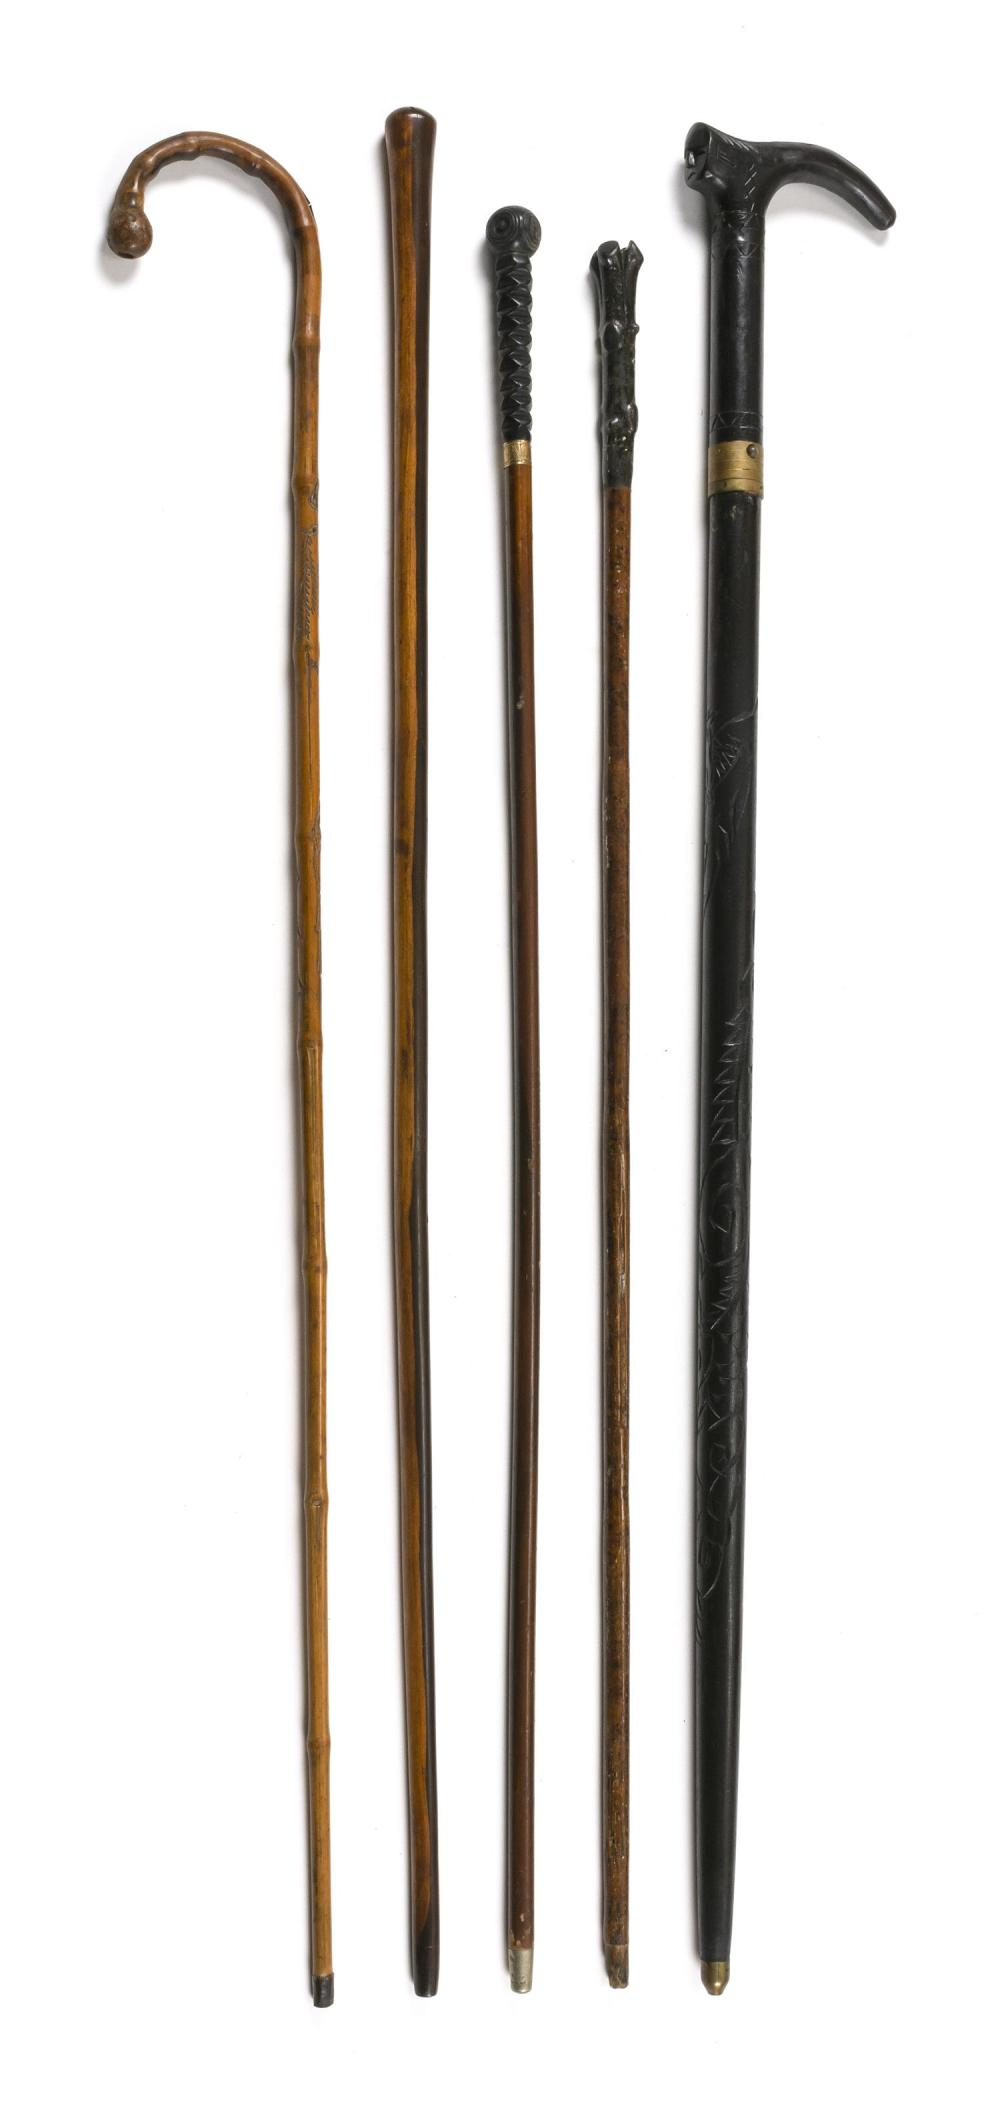 "FIVE CARVED WOODEN CANES Two with metal collars. Lengths from 34"" to 36""."